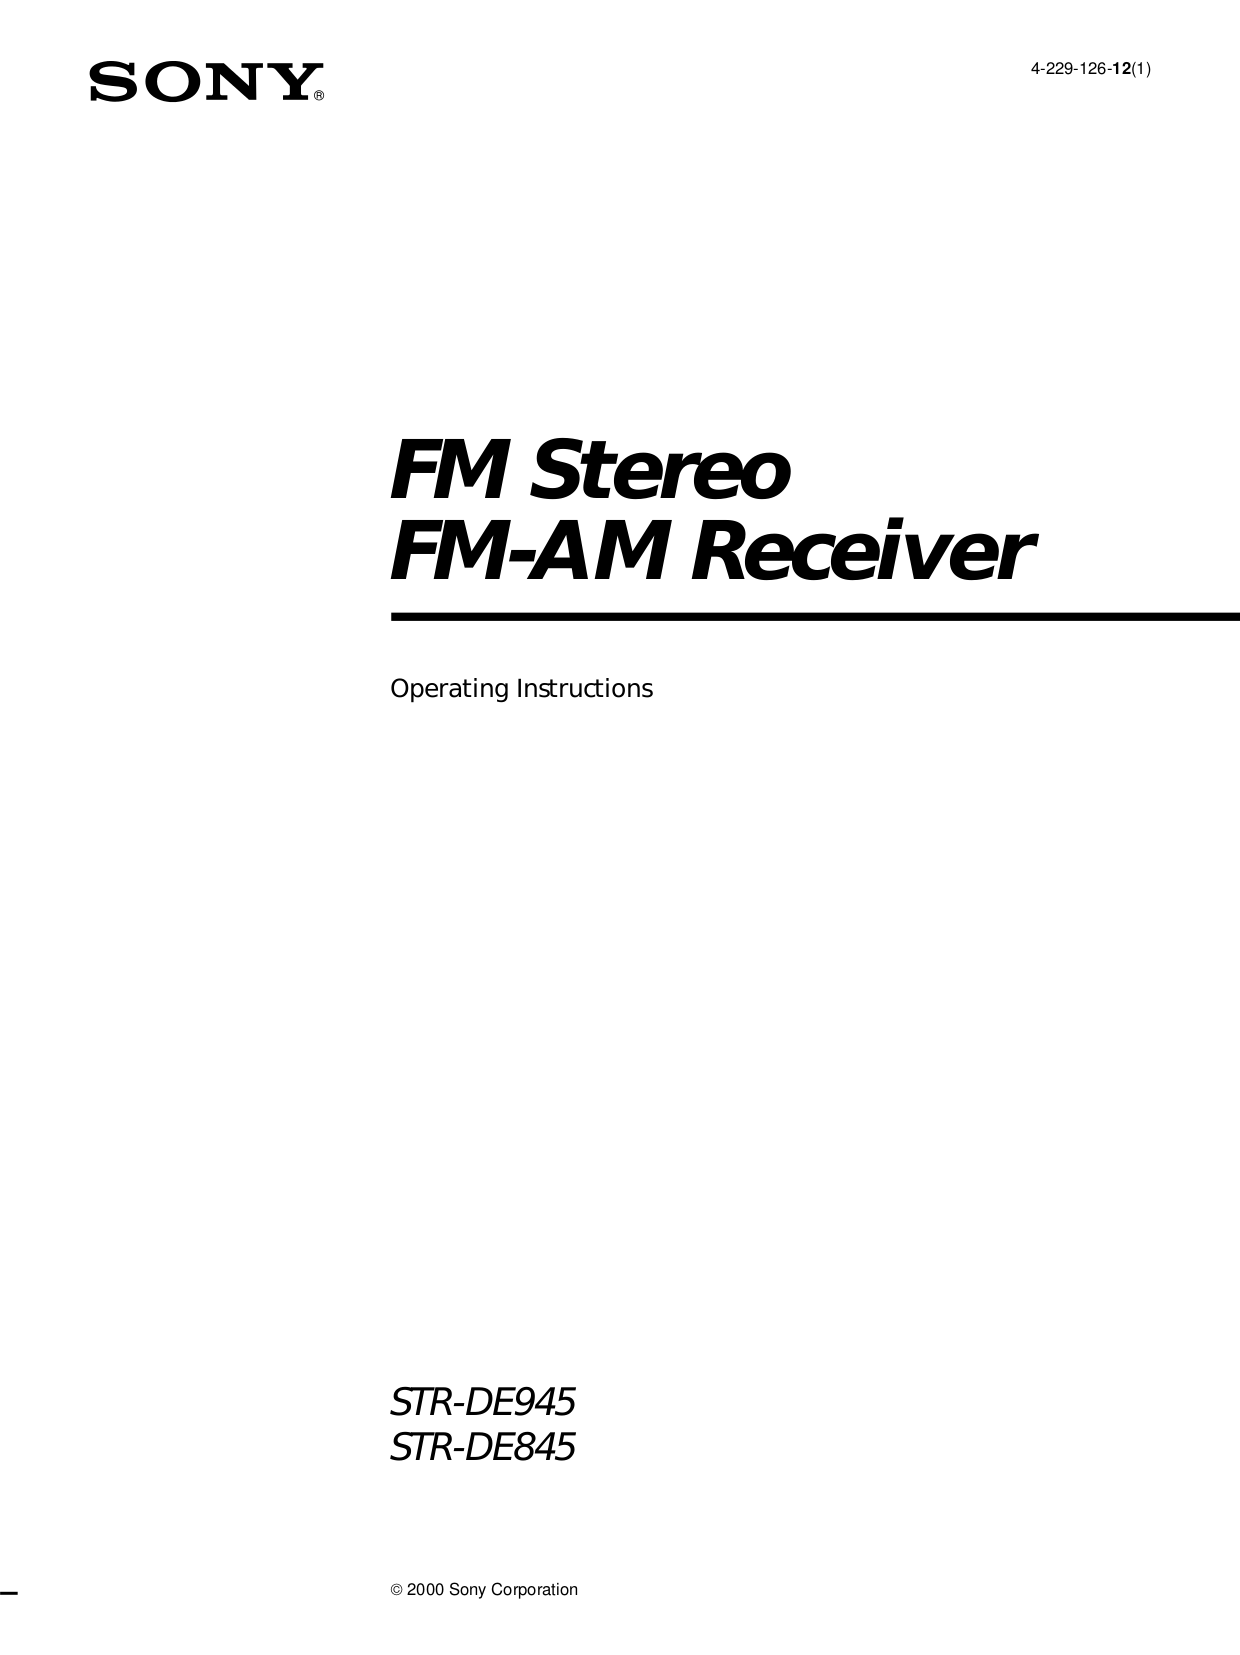 PDF manual for Sony Receiver STR-DE845